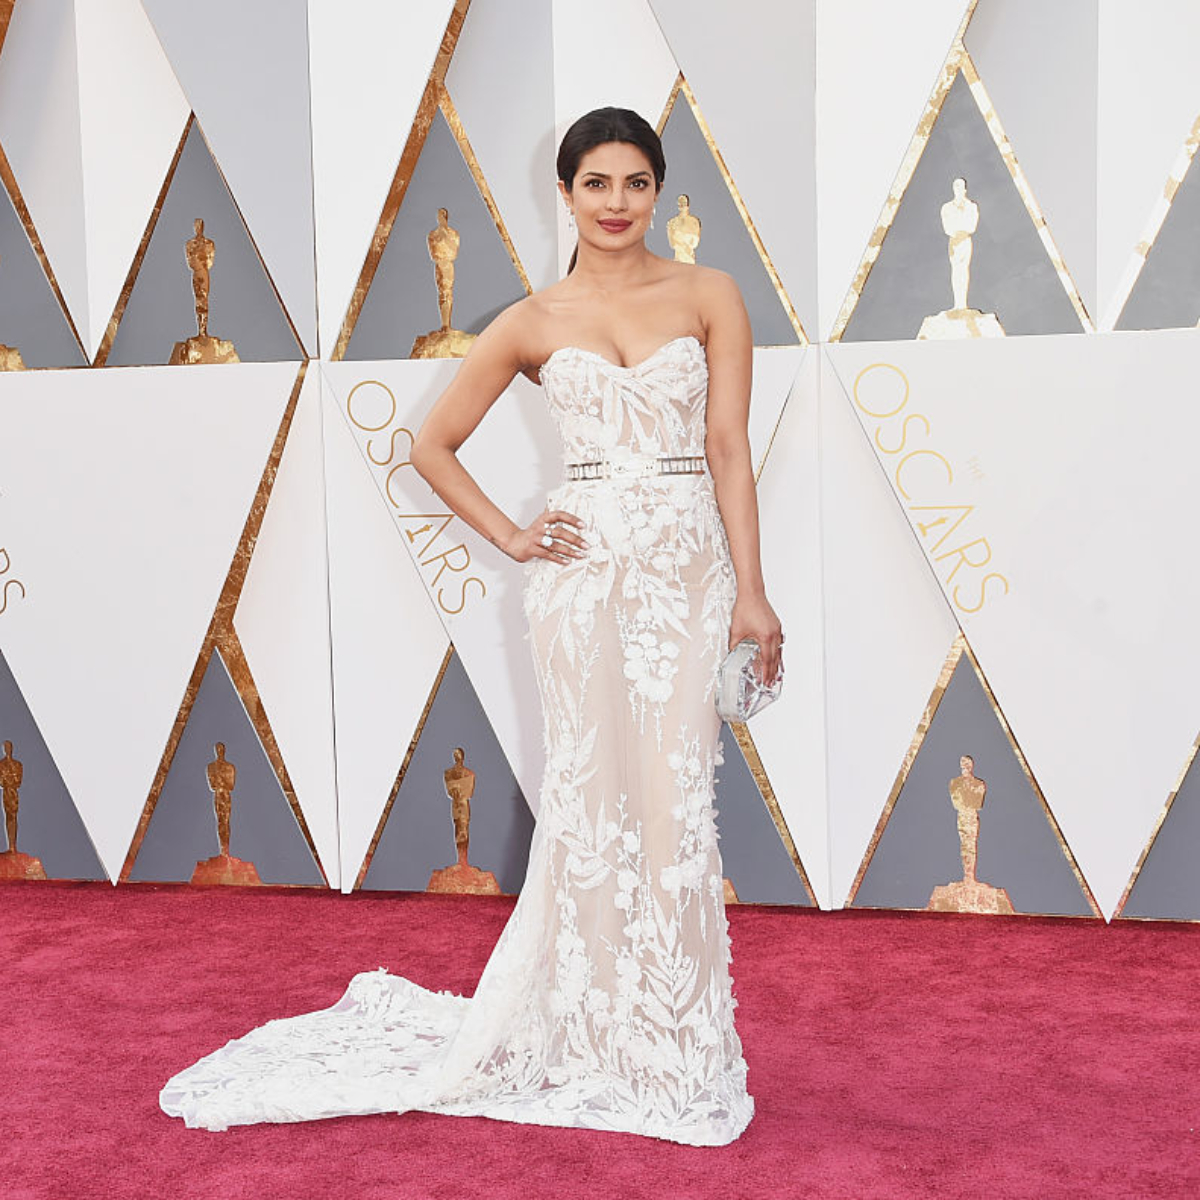 Best Dresses Oscars 2021 Priyanka Chopra Jonas for Oscars 2021? PeeCee predicted to bag